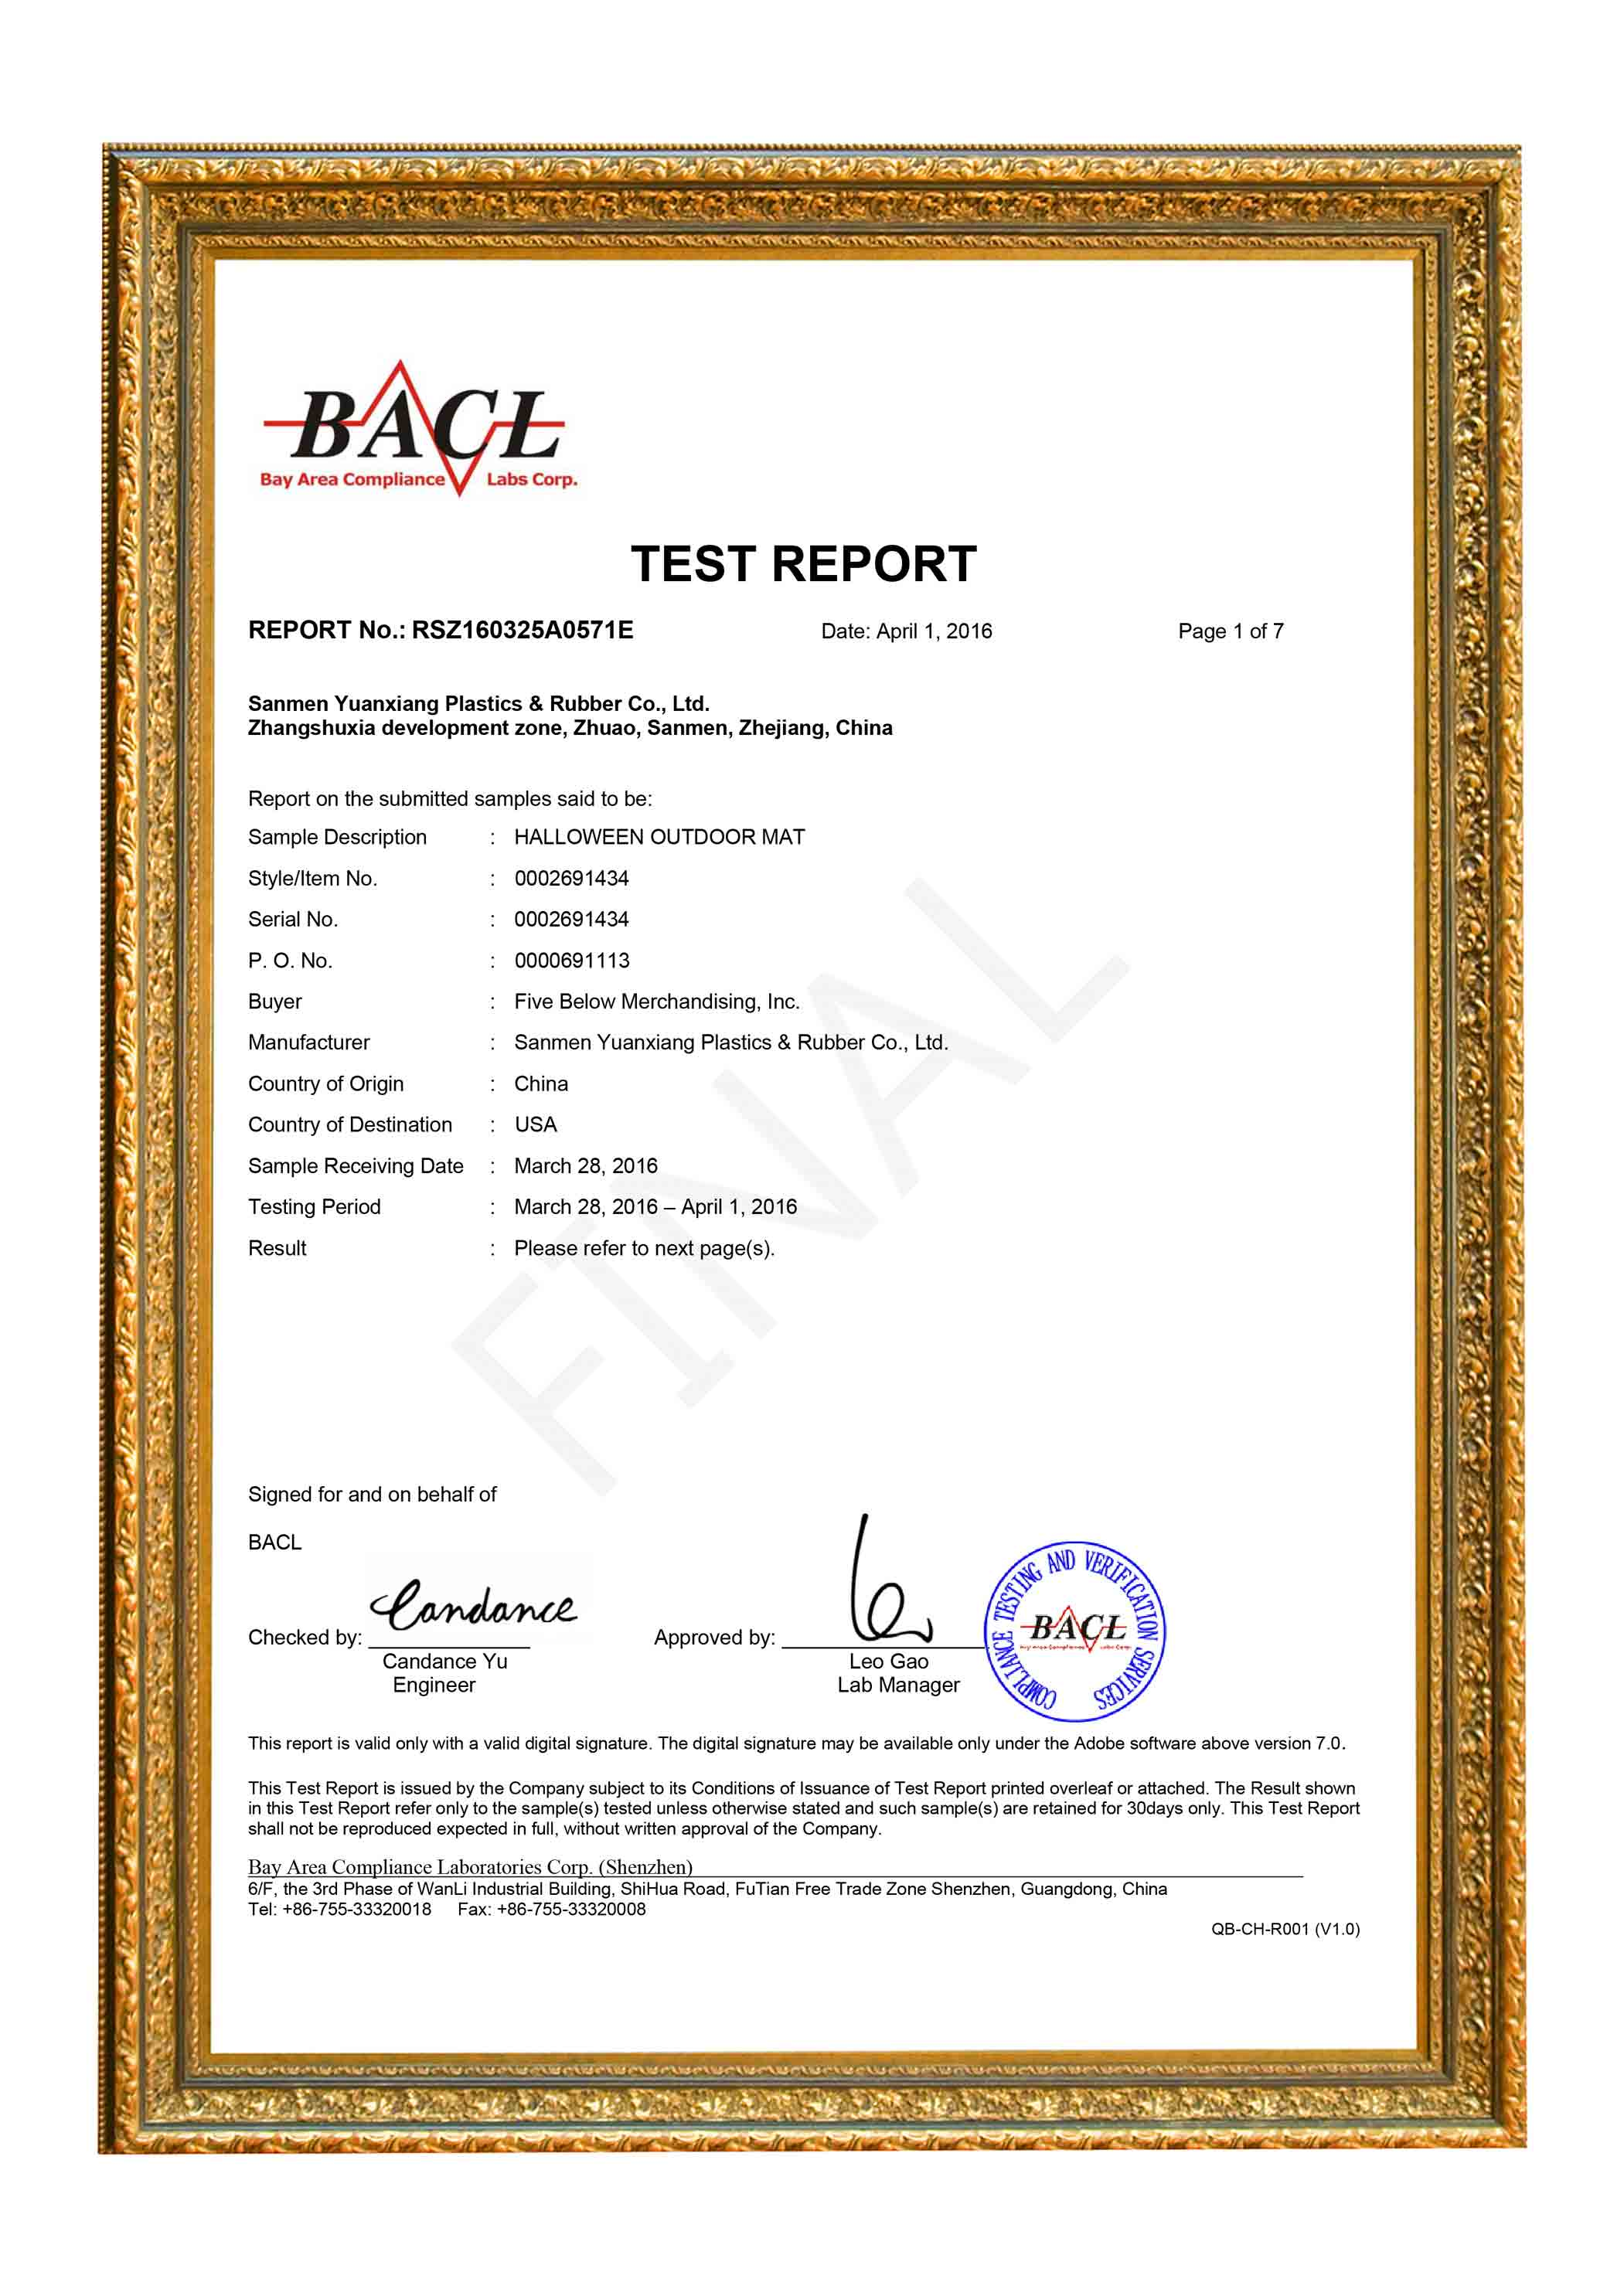 TEST REPORT BY BACL